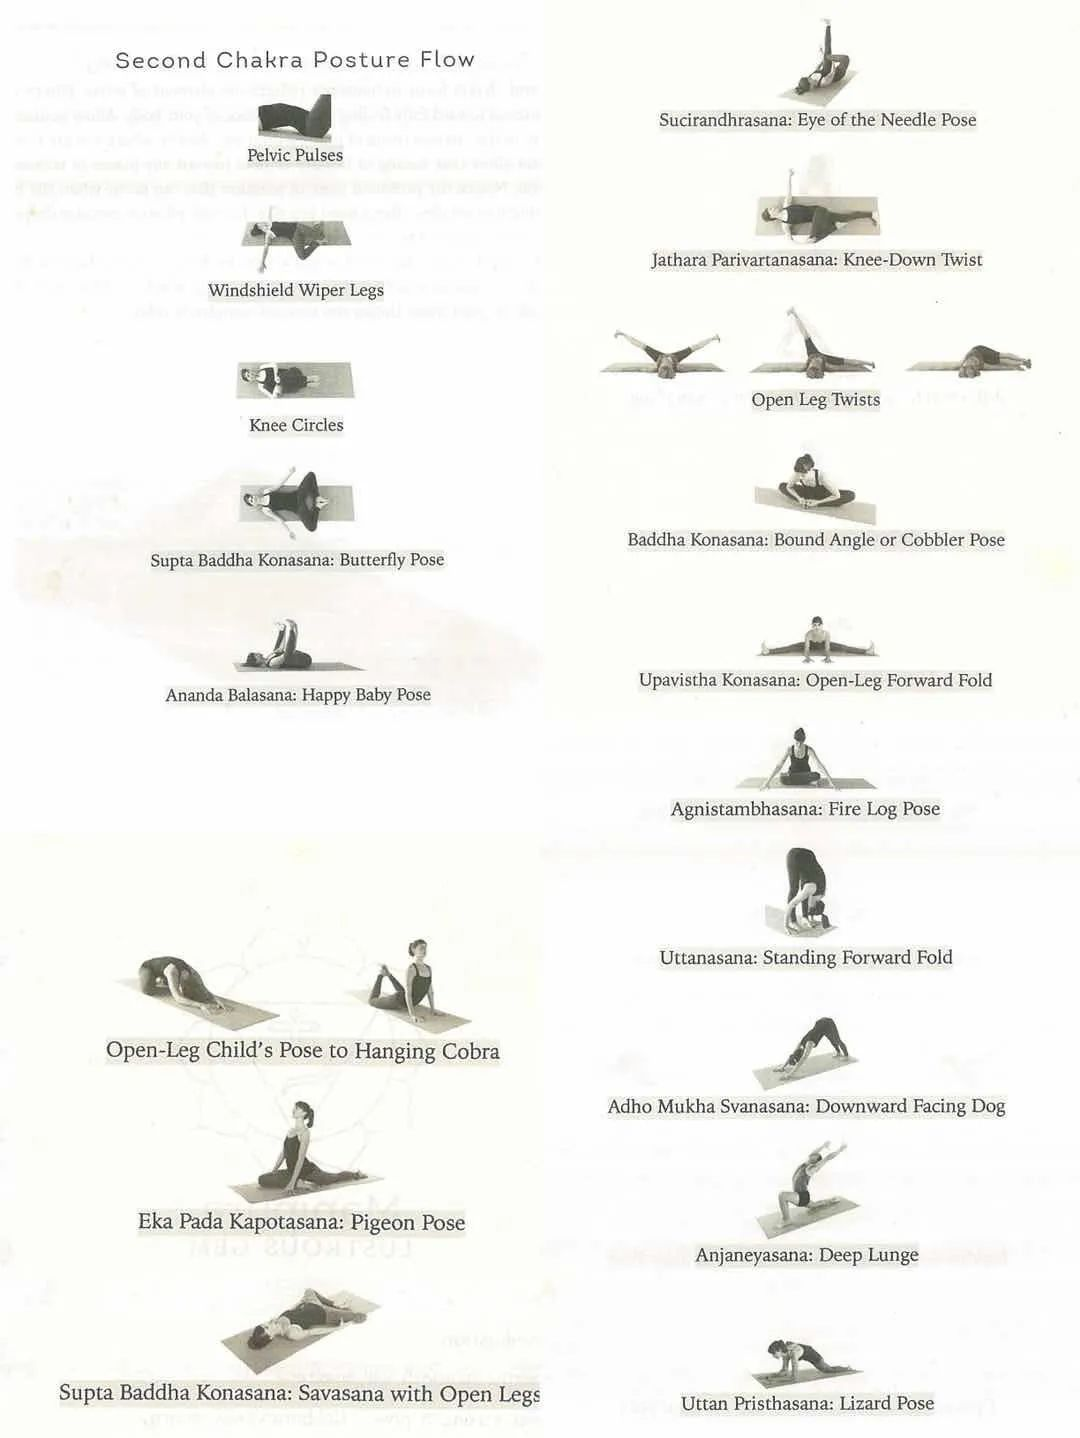 Practice and asana of the second chakra